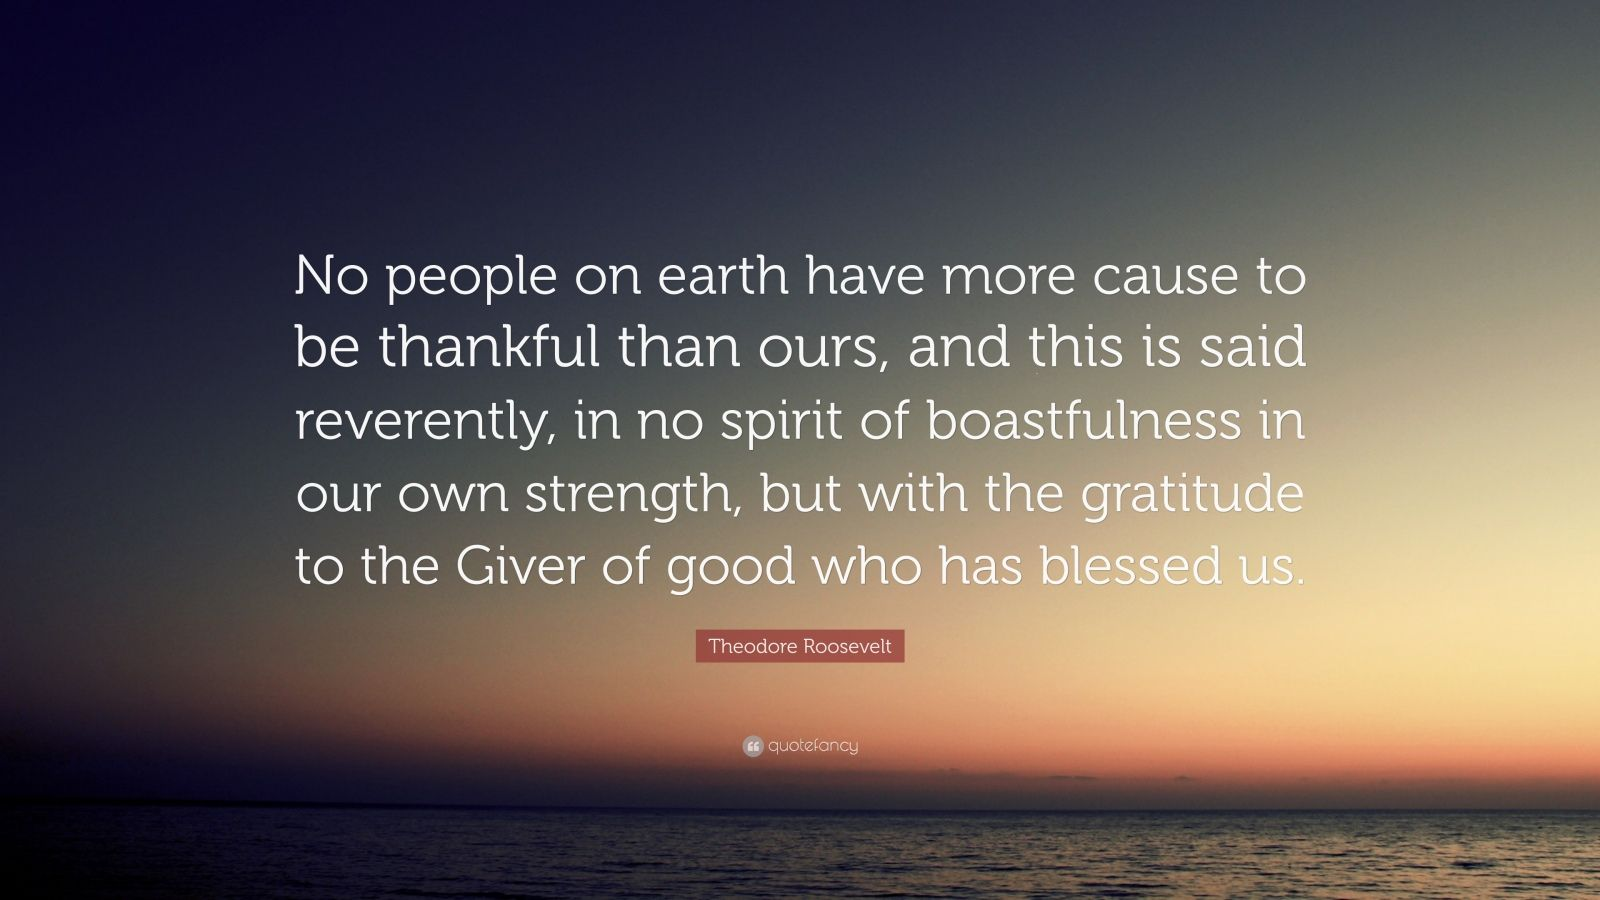 """Theodore Roosevelt Quote: """"No people on earth have more cause to be thankful than ours, and this is said reverently, in no spirit of boastfulness in our own strength, but with the gratitude to the Giver of good who has blessed us."""""""